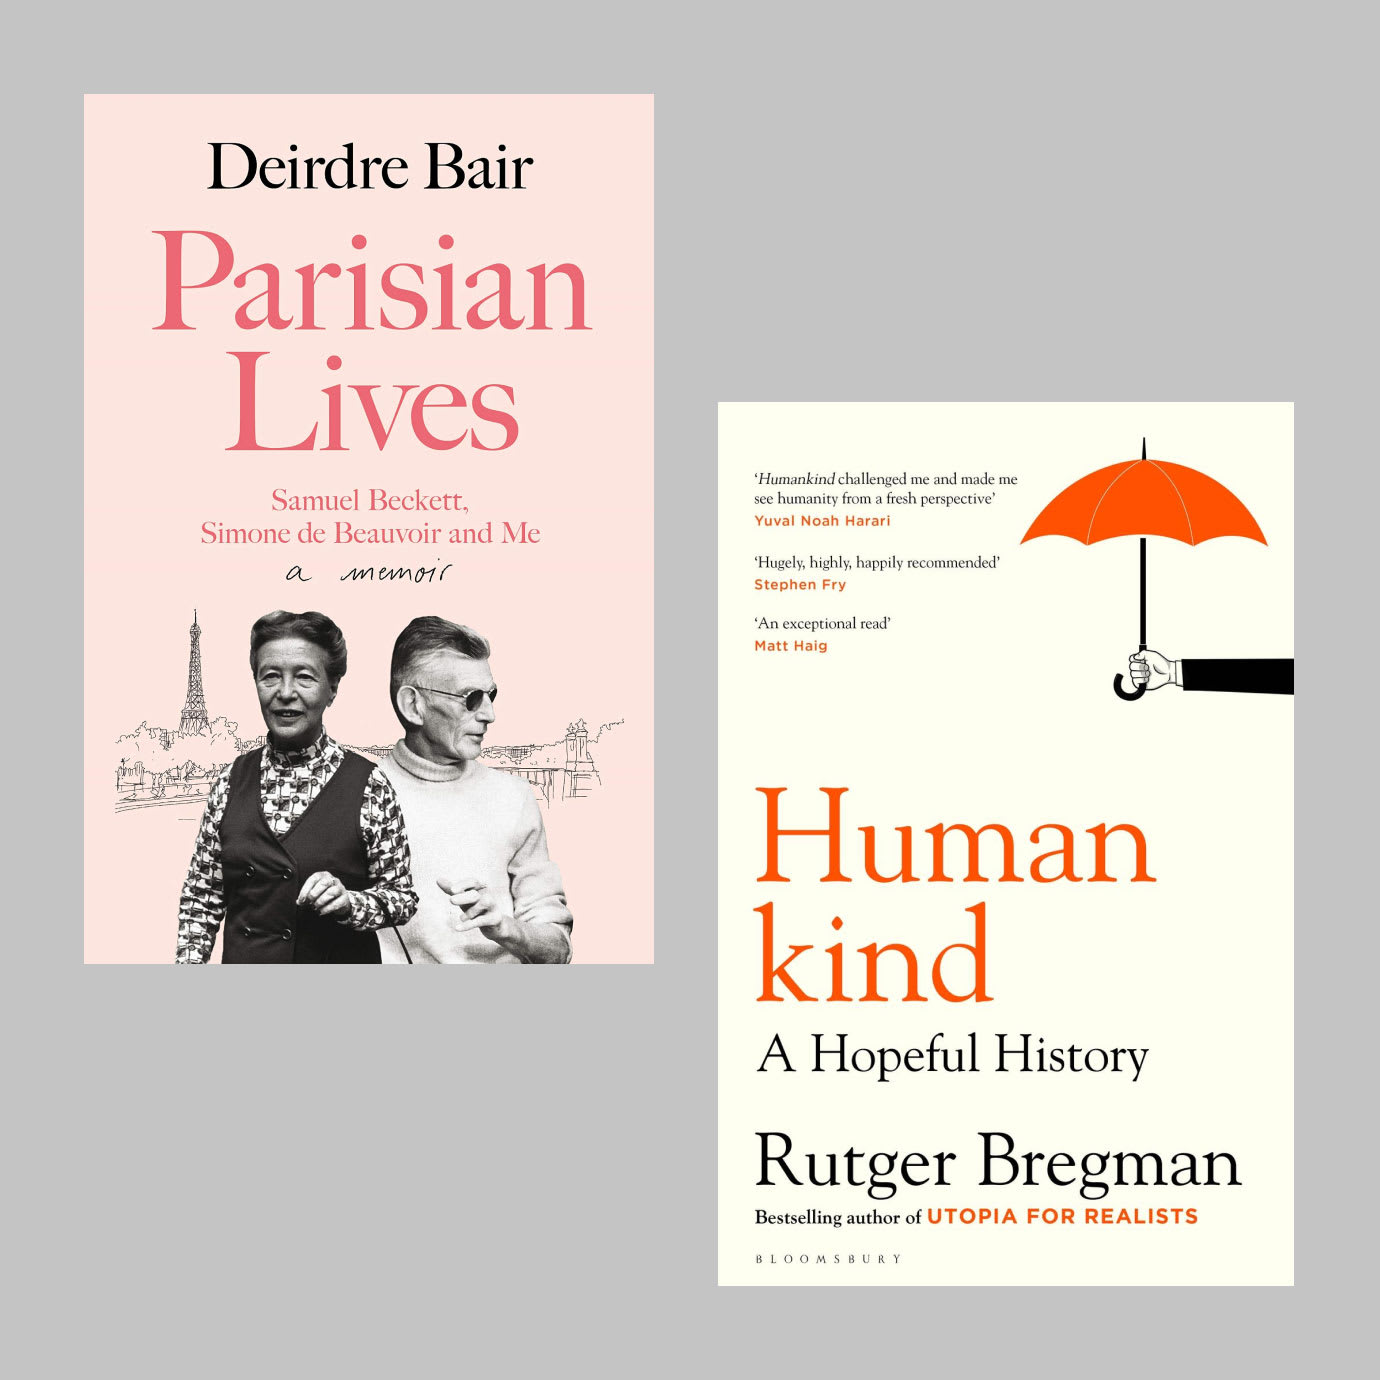 Two book covers on a grey background.